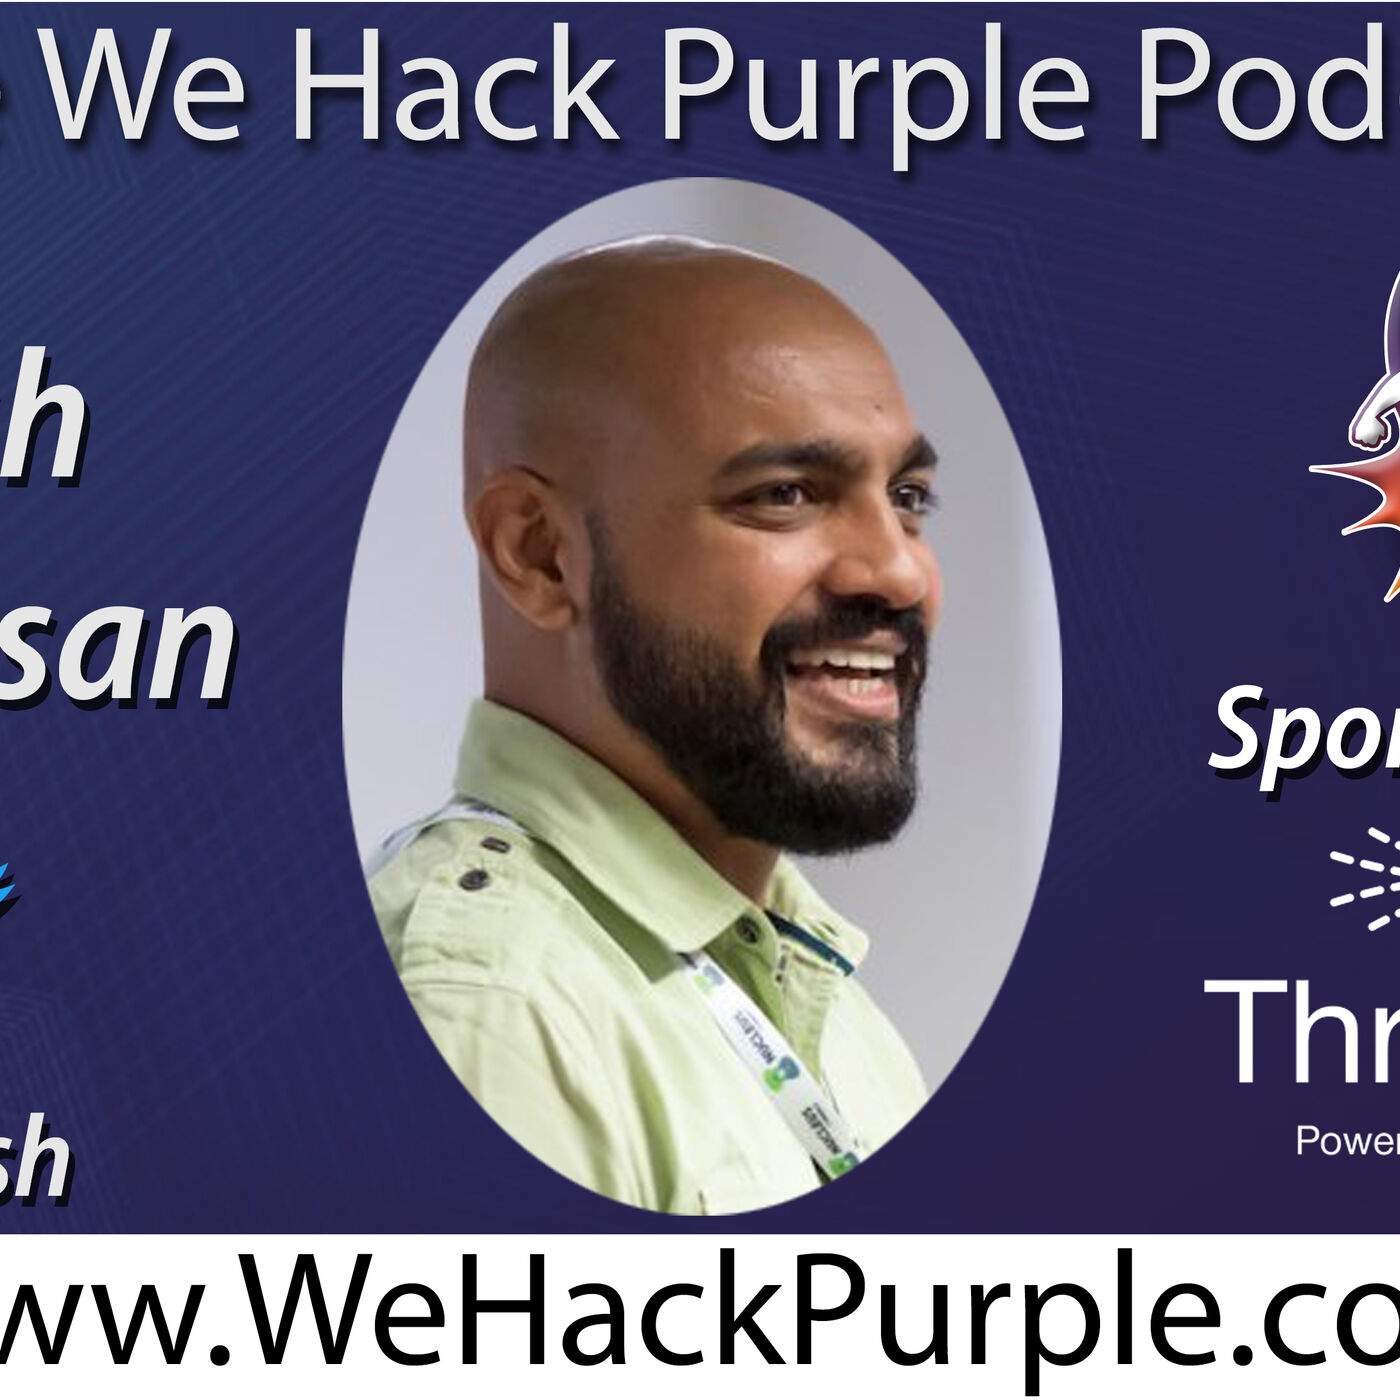 We Hack Purple Podcast 22 with Guest Talesh Seeparsan